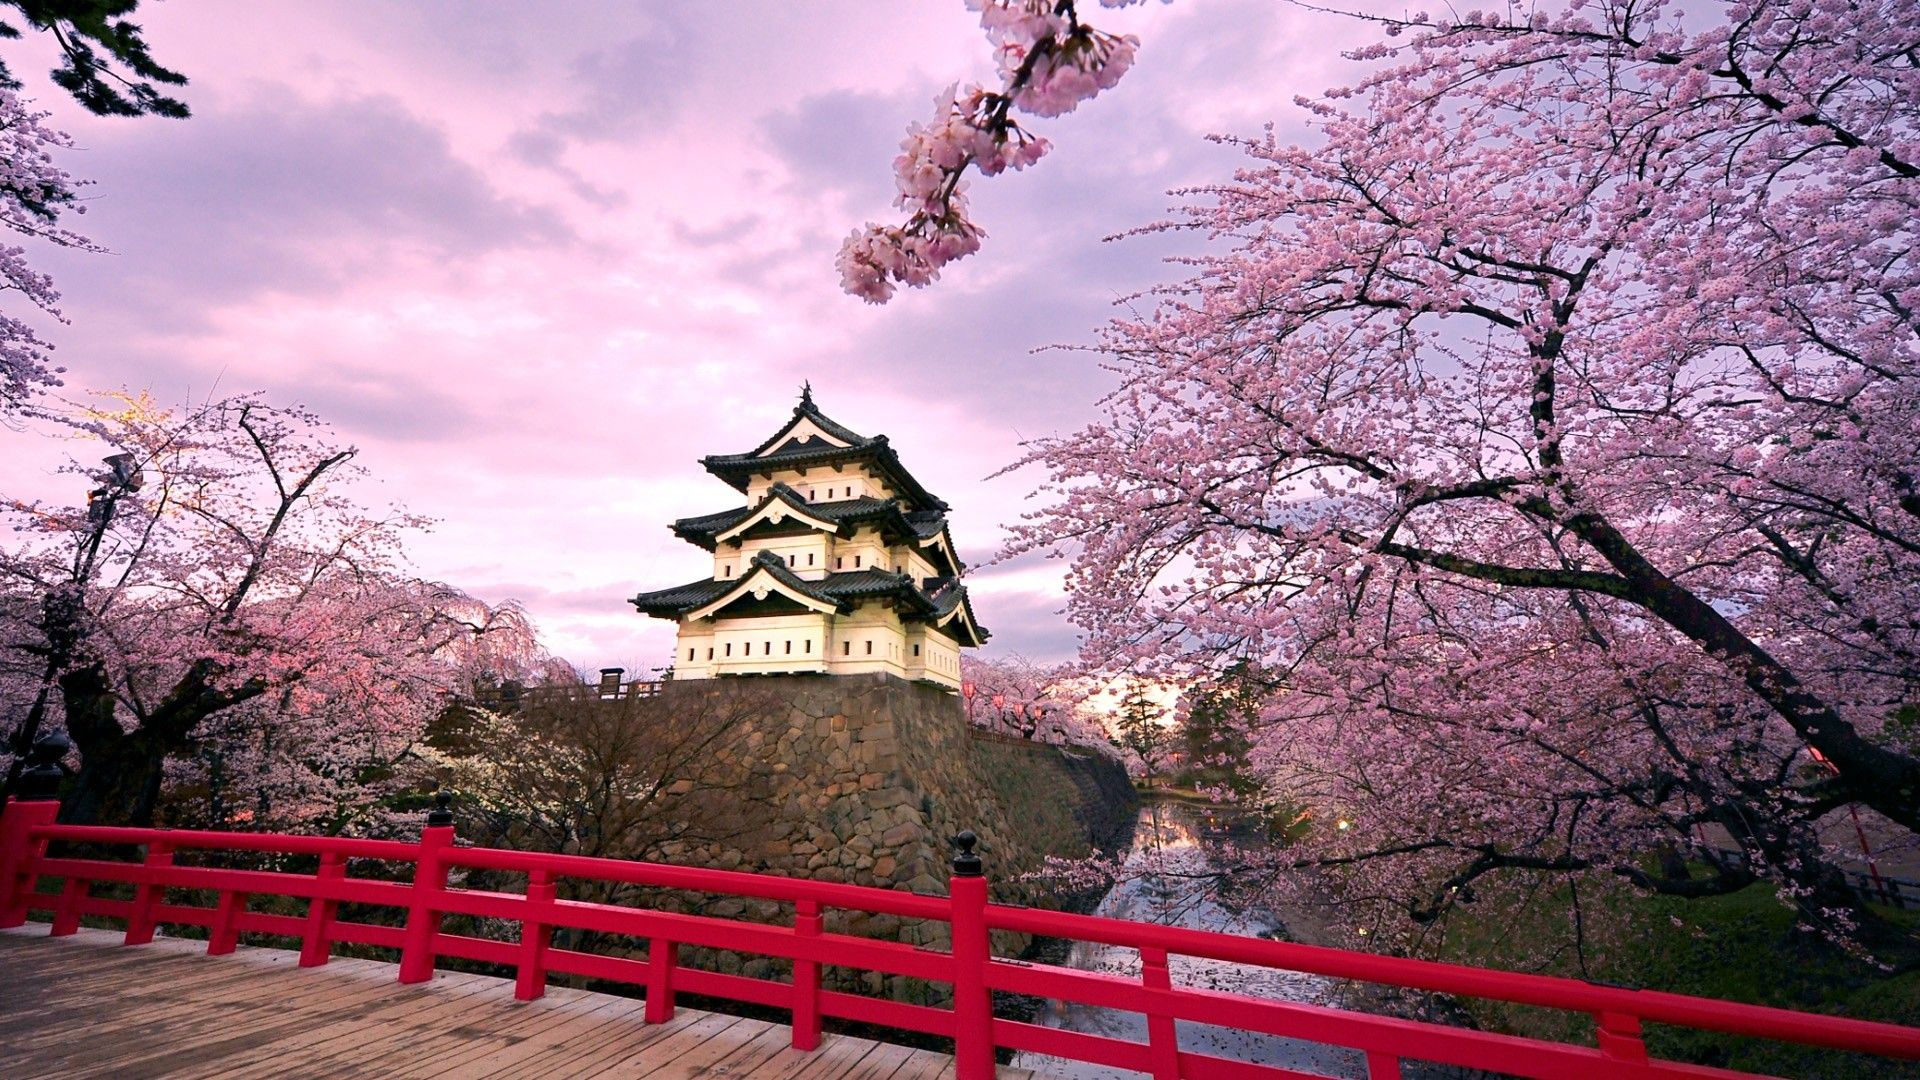 Japanese Cherry Blossom Garden Wallpapers Background For HD Wallpaper Desktop 1920x1080 Px 65709 KB